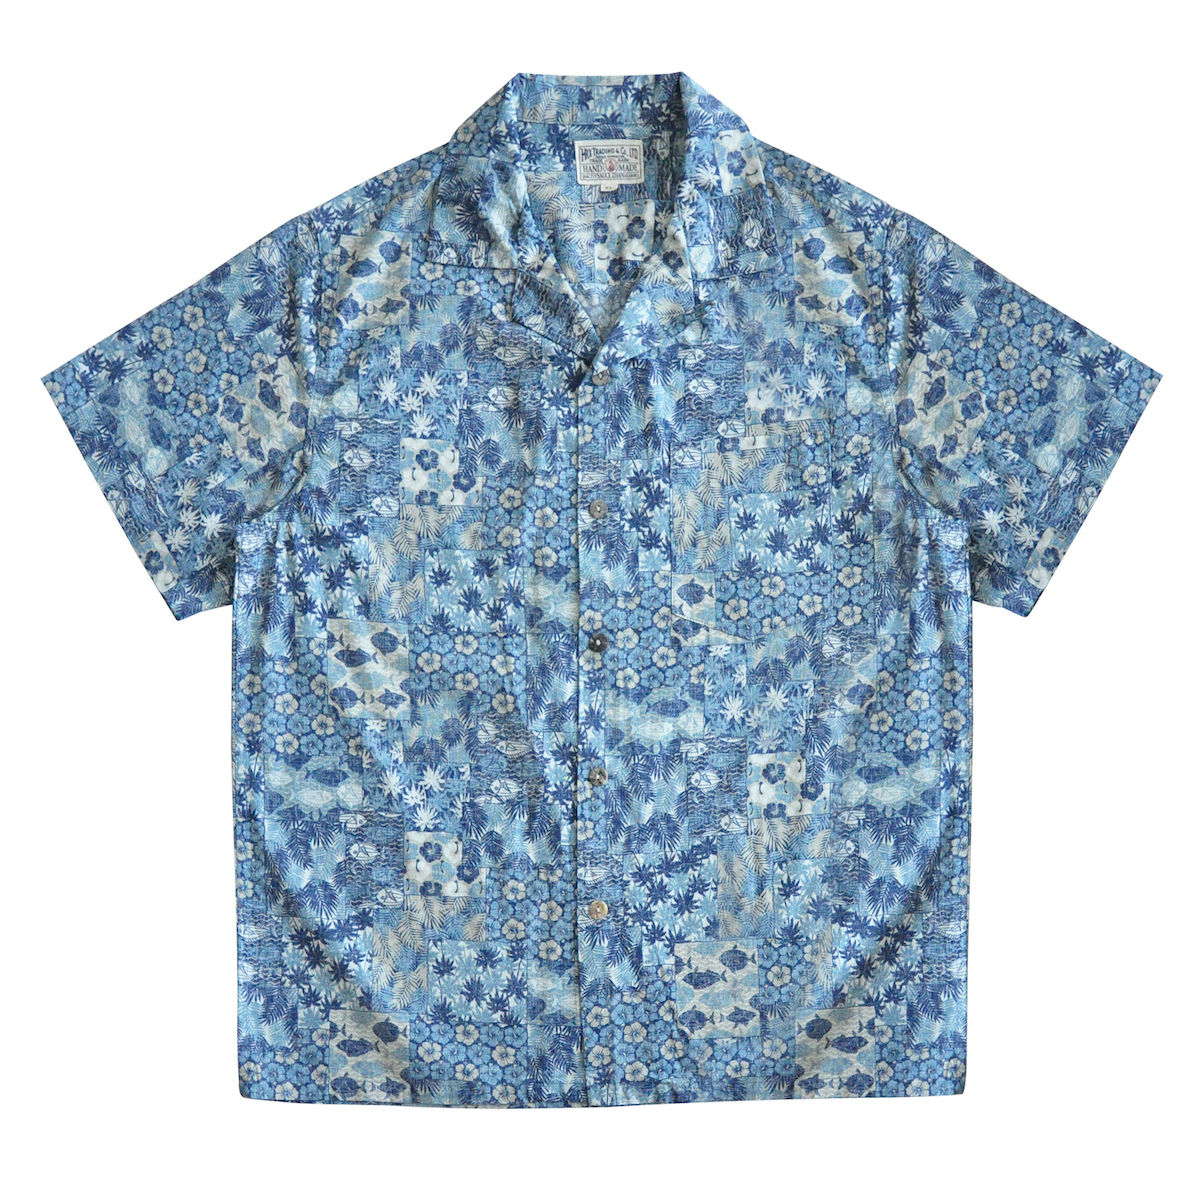 Sauce Zhan Mens Hawaiian Shirt Men's Casual Shirt Japanese Fabric Printed Beach Men's Short Sleeve Shirt